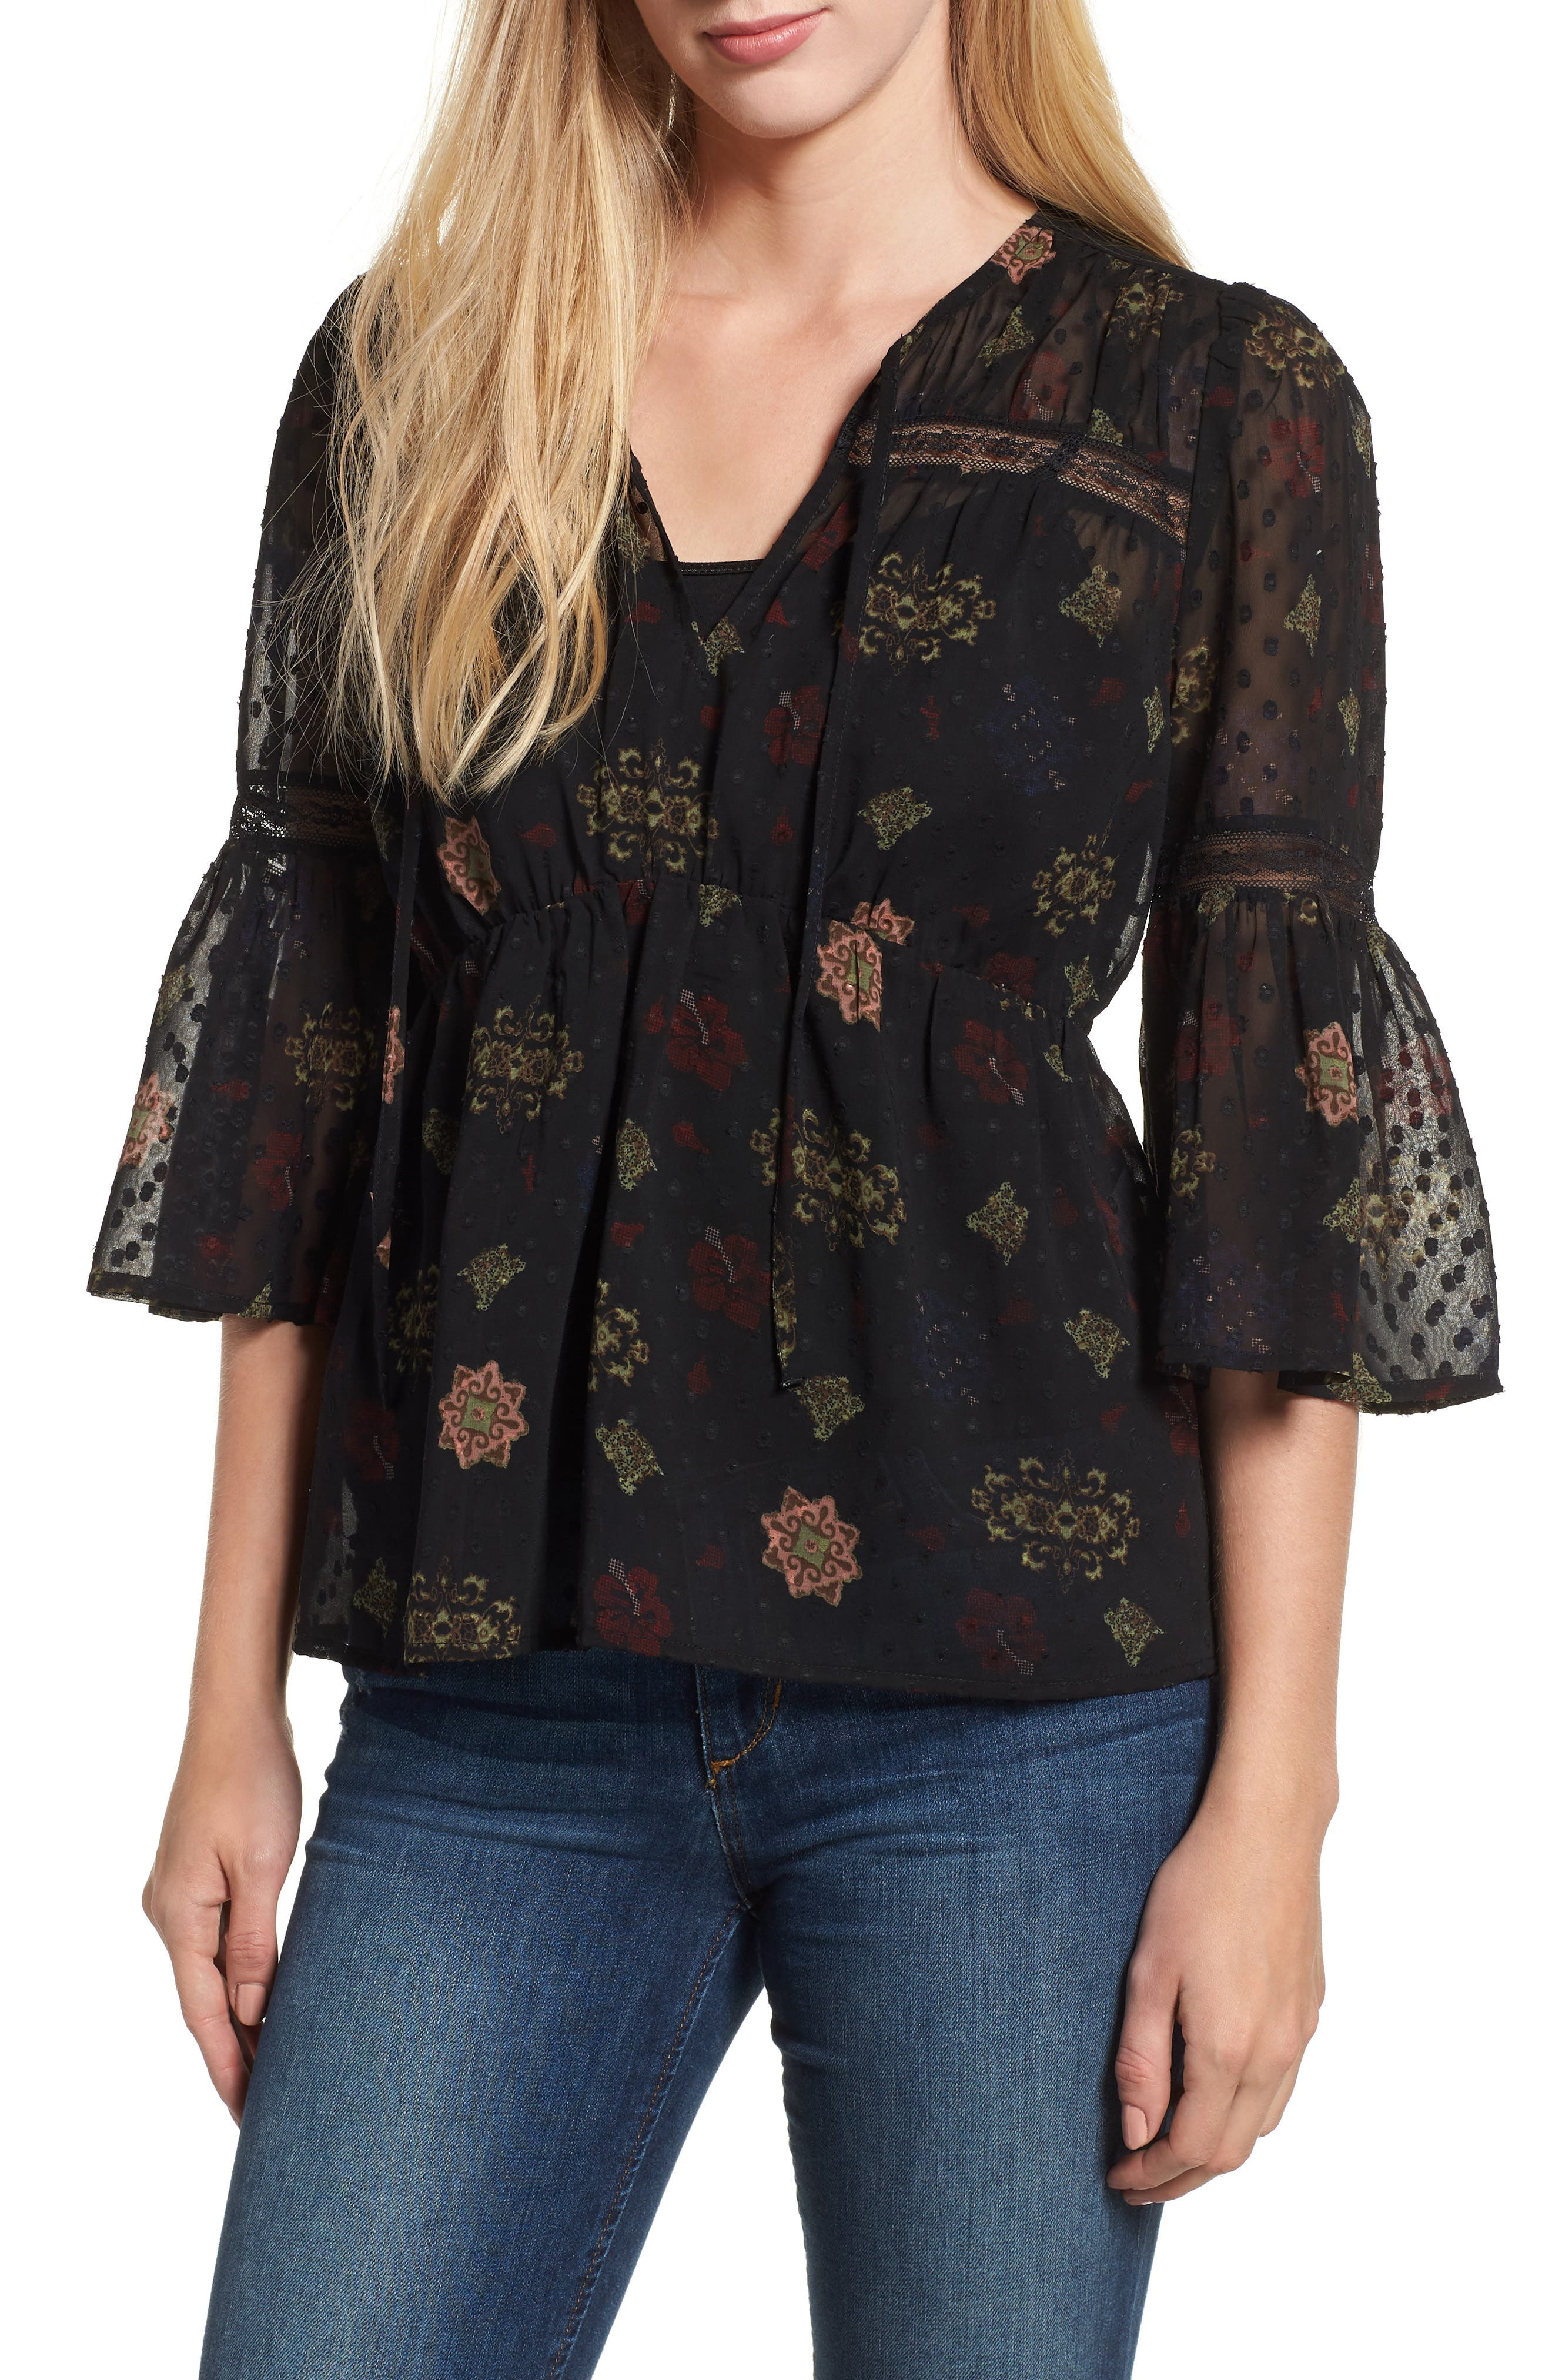 Swiss Dot Sheer Floral Blouse,                             Main thumbnail 1, color,                             001